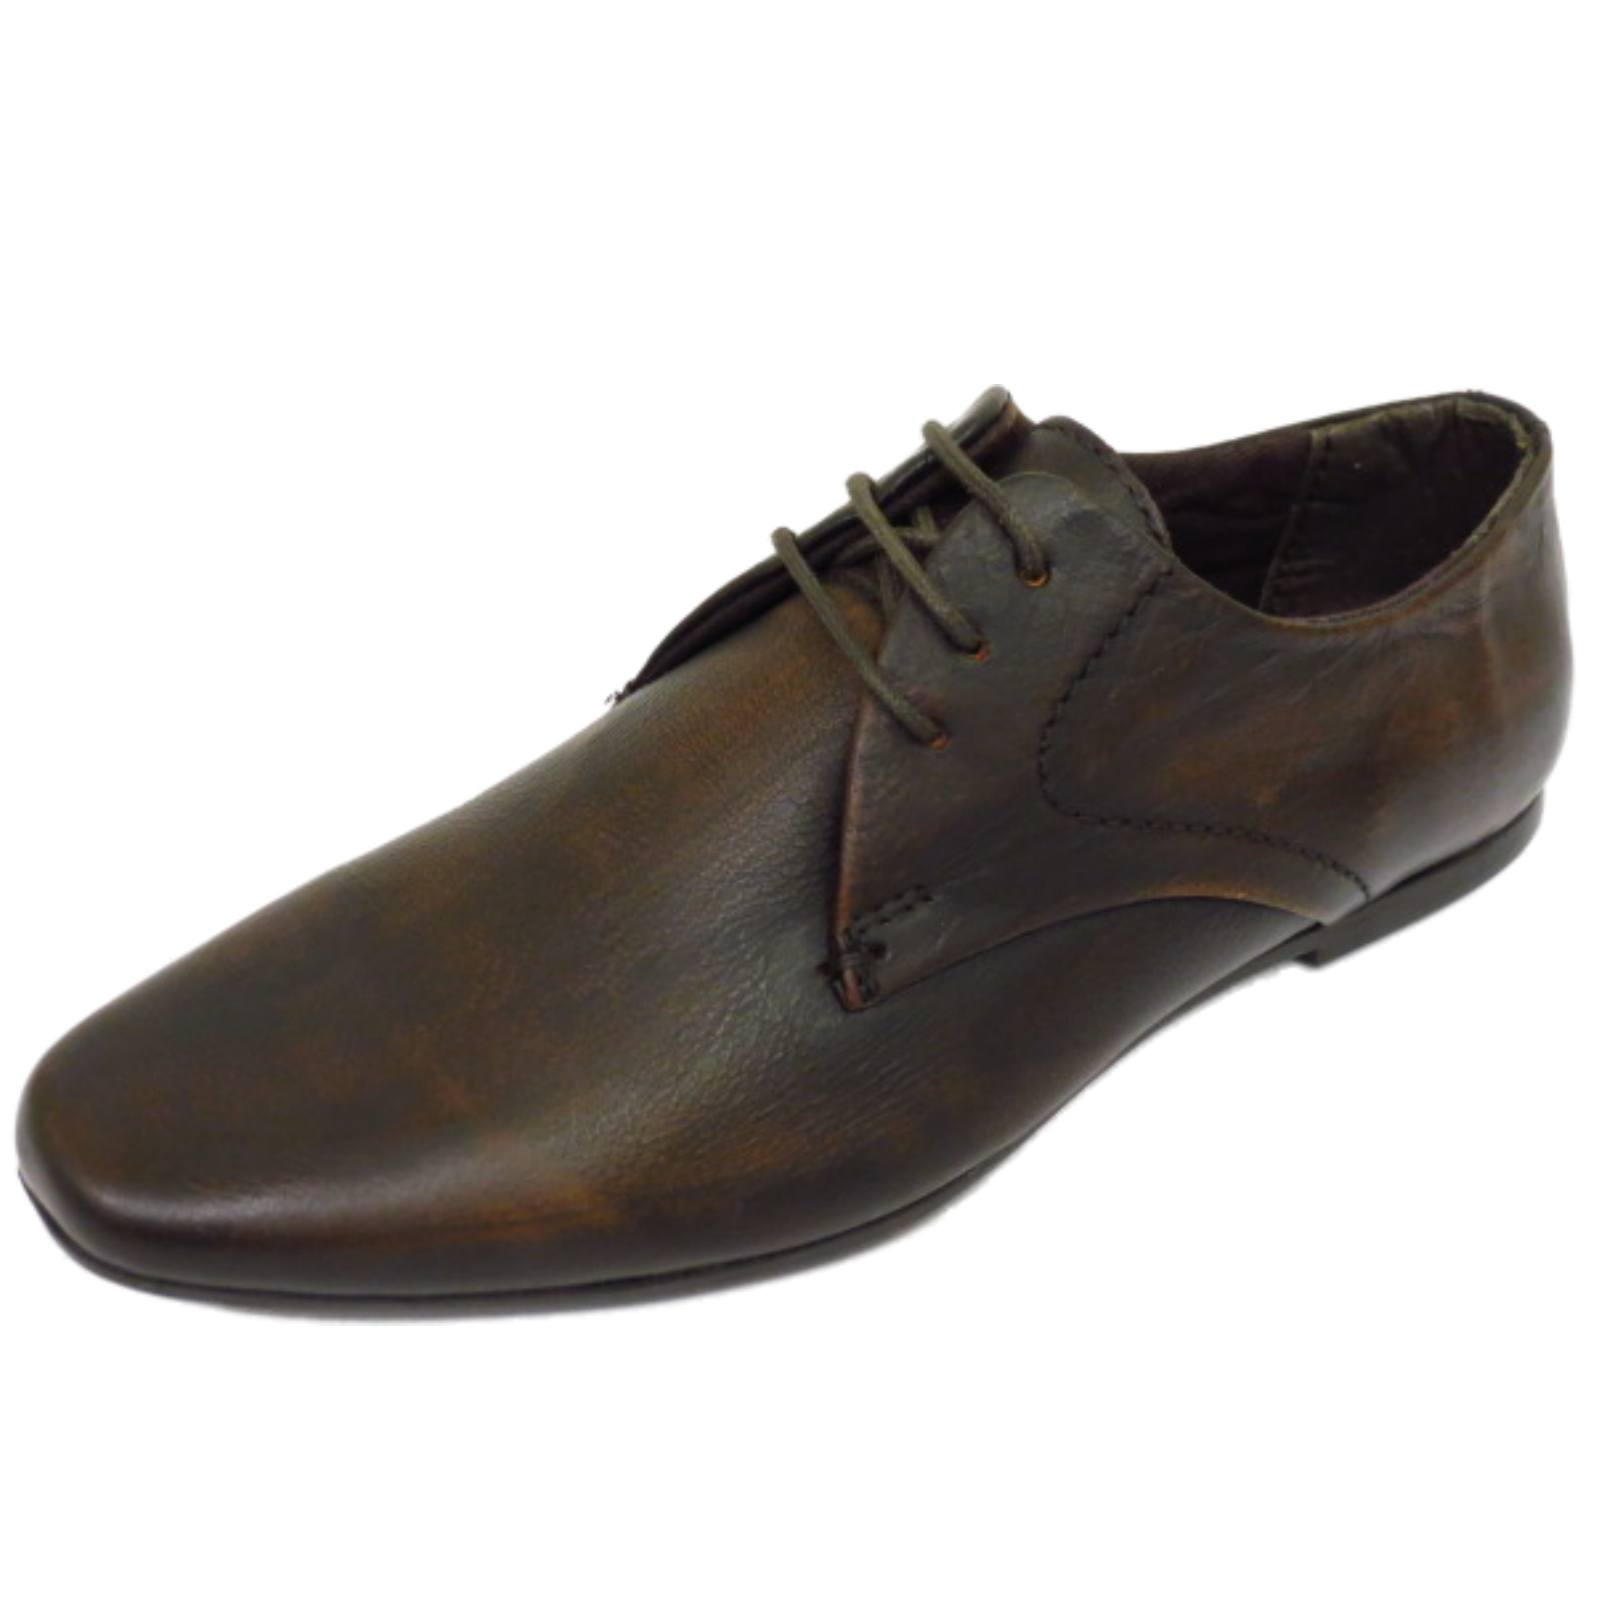 BOYS KIDS CHILDRENS BROWN LEATHER LACE-UP WEDDING SMART SUIT LOAFER SHOES 1-6